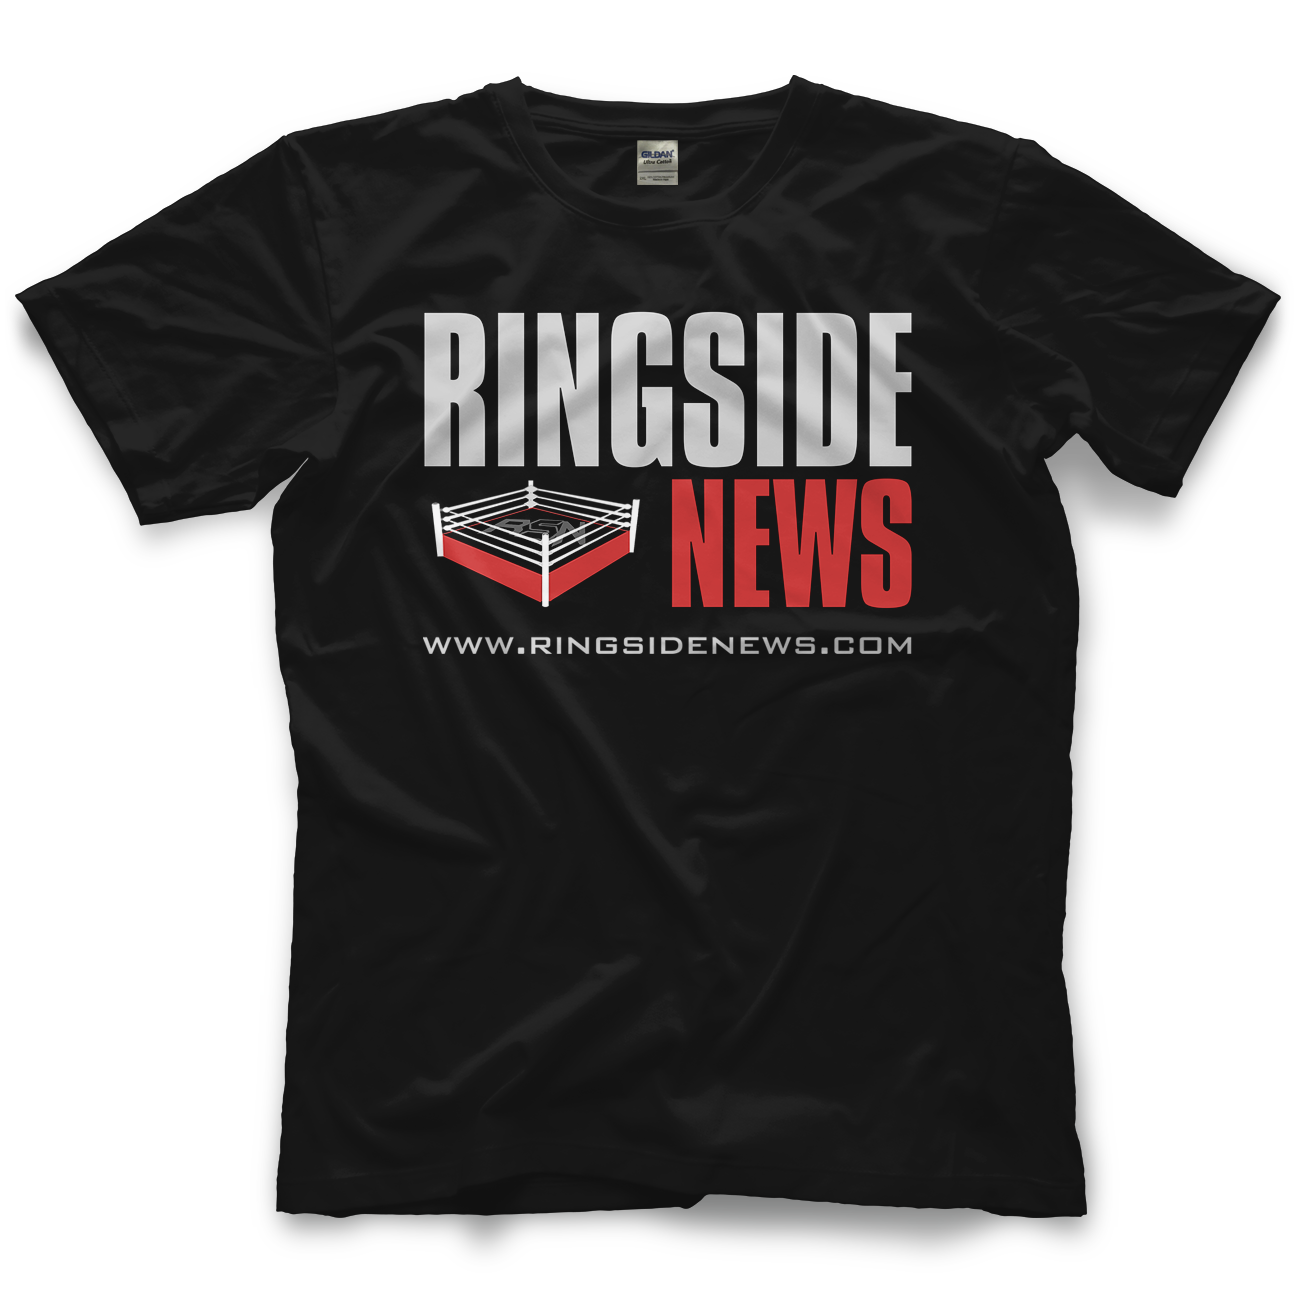 Official Ringside News